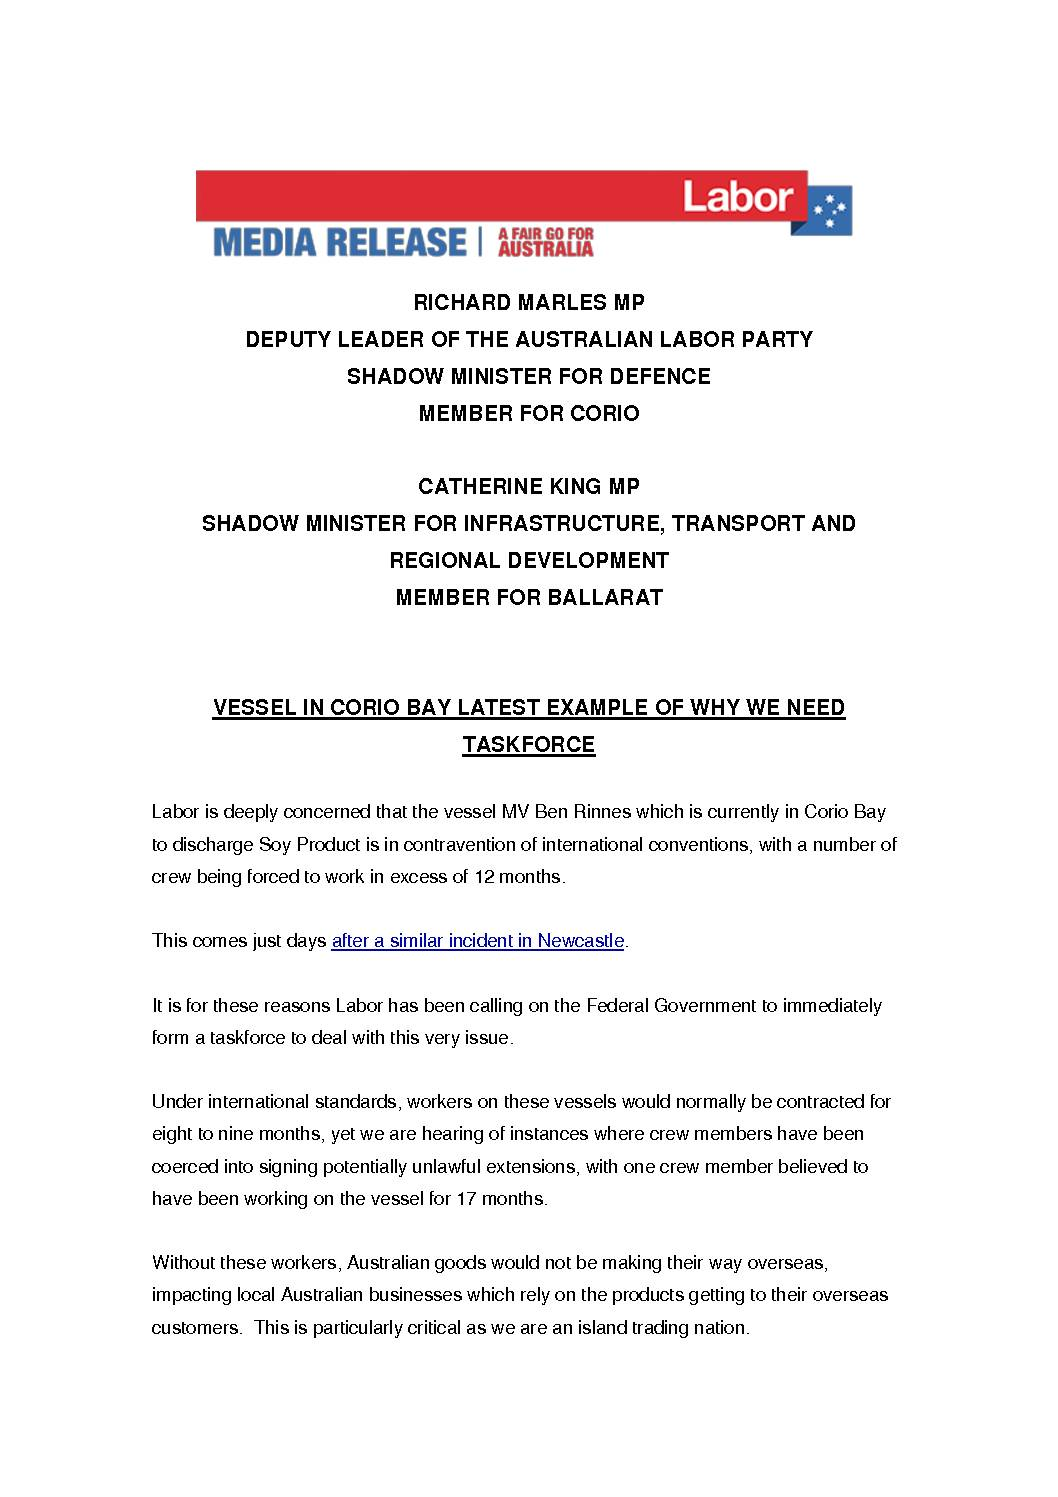 20.08.06-VESSEL-IN-CORIO-BAY-LATEST-EXAMPLE-OF-WHY-WE-NEED-TASKFORCE-MEDIA-RELEASE